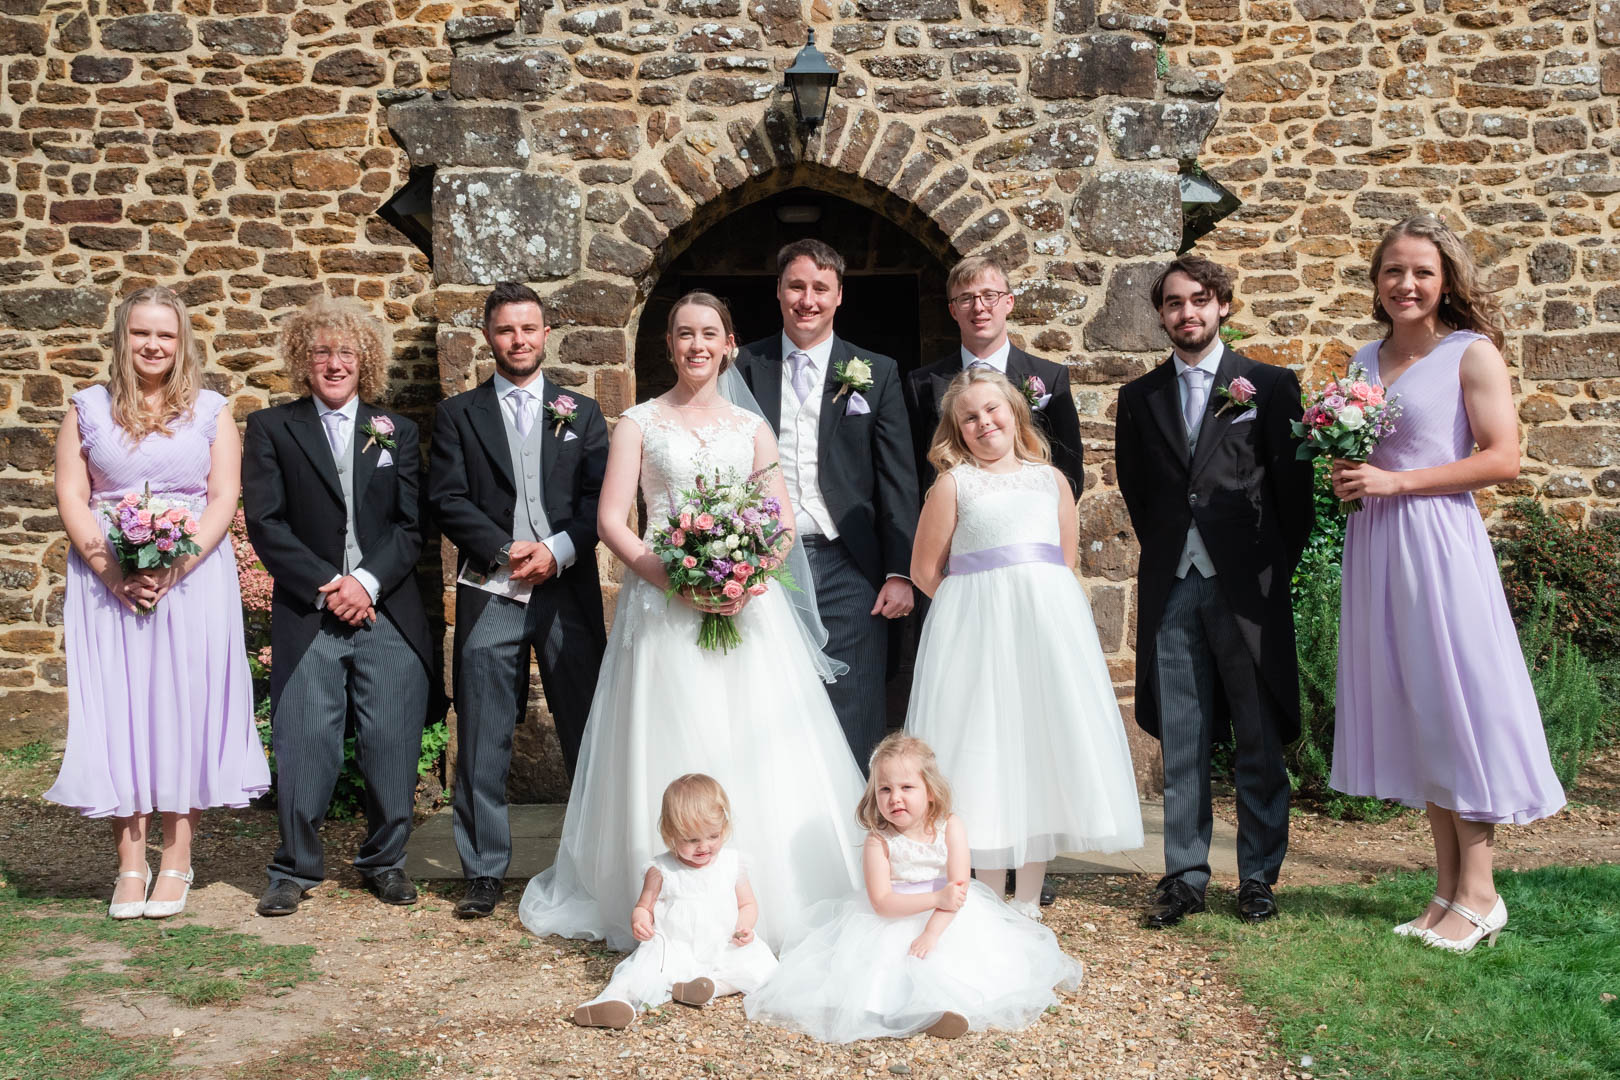 Michaela and Rupert with their bridesmaids and groomsmen